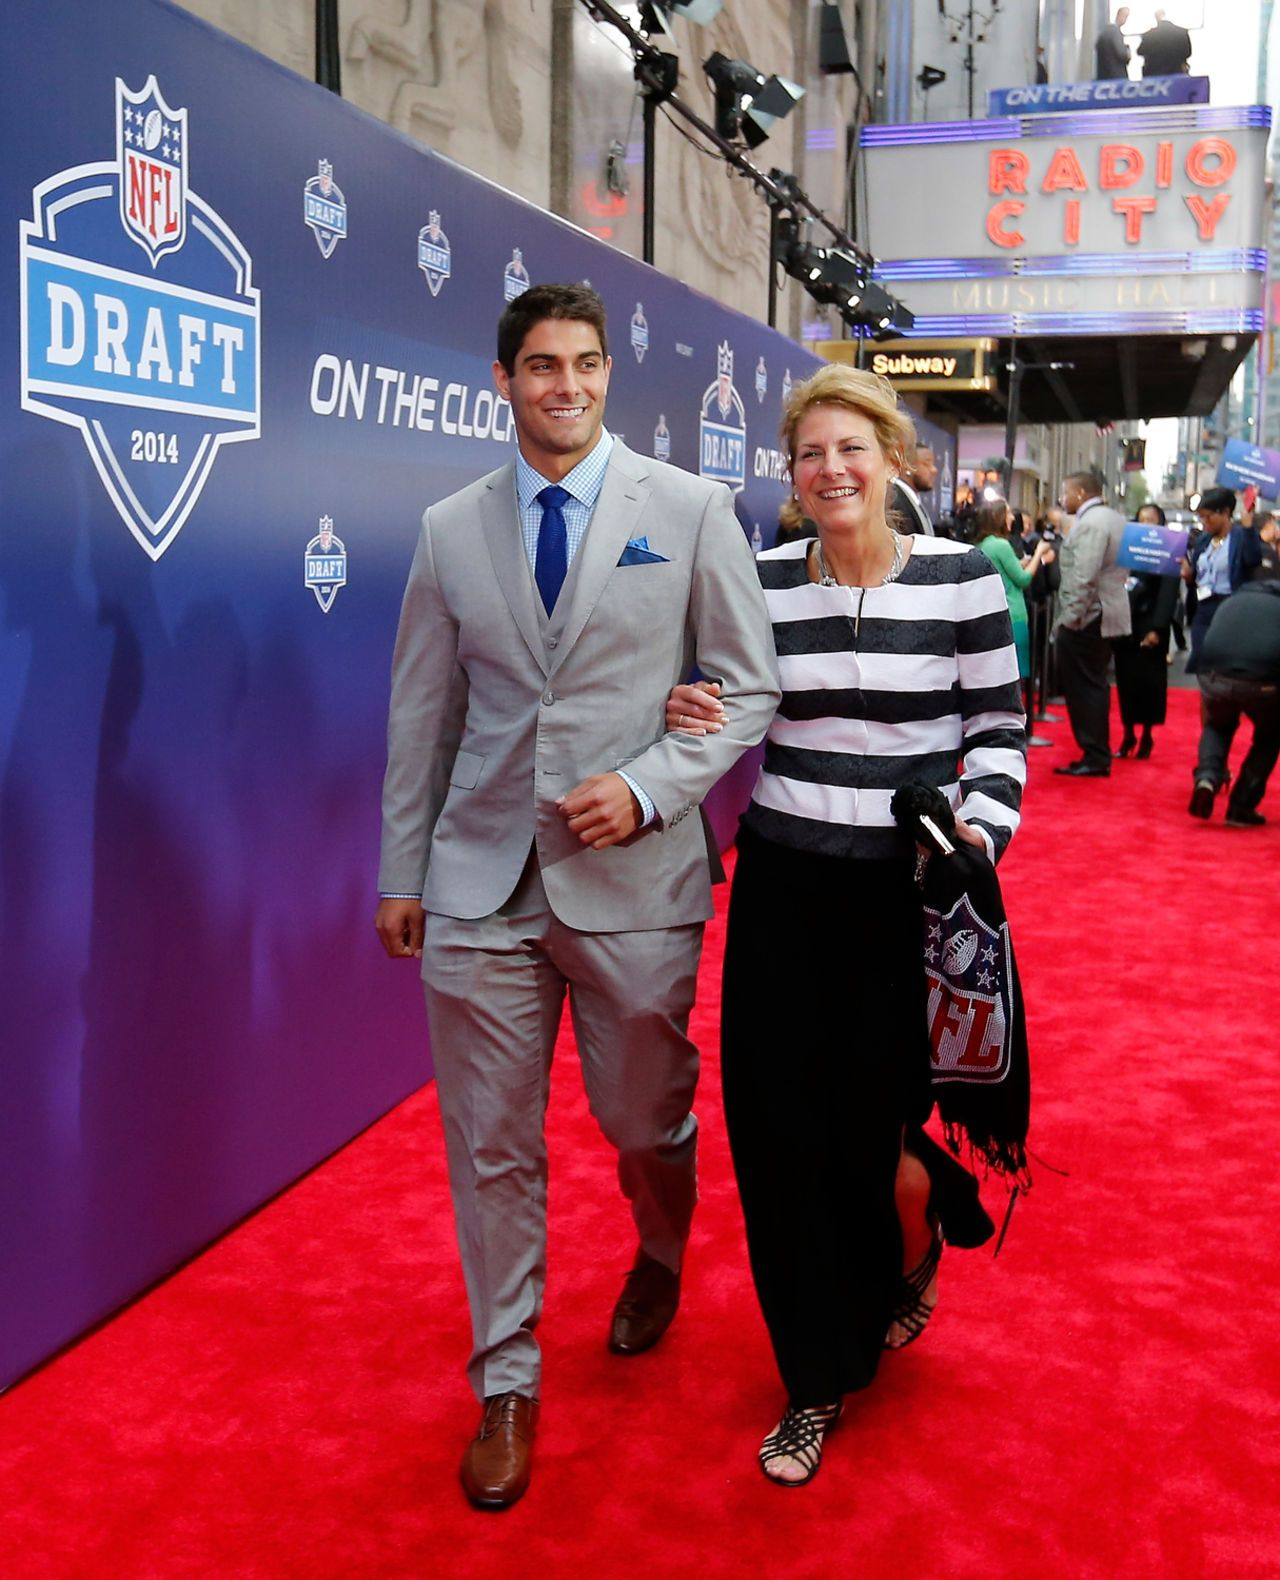 The Patriots Newest Draft Pick Qb Jimmy Garoppolo Football Boyfriend New England Patriots American Football